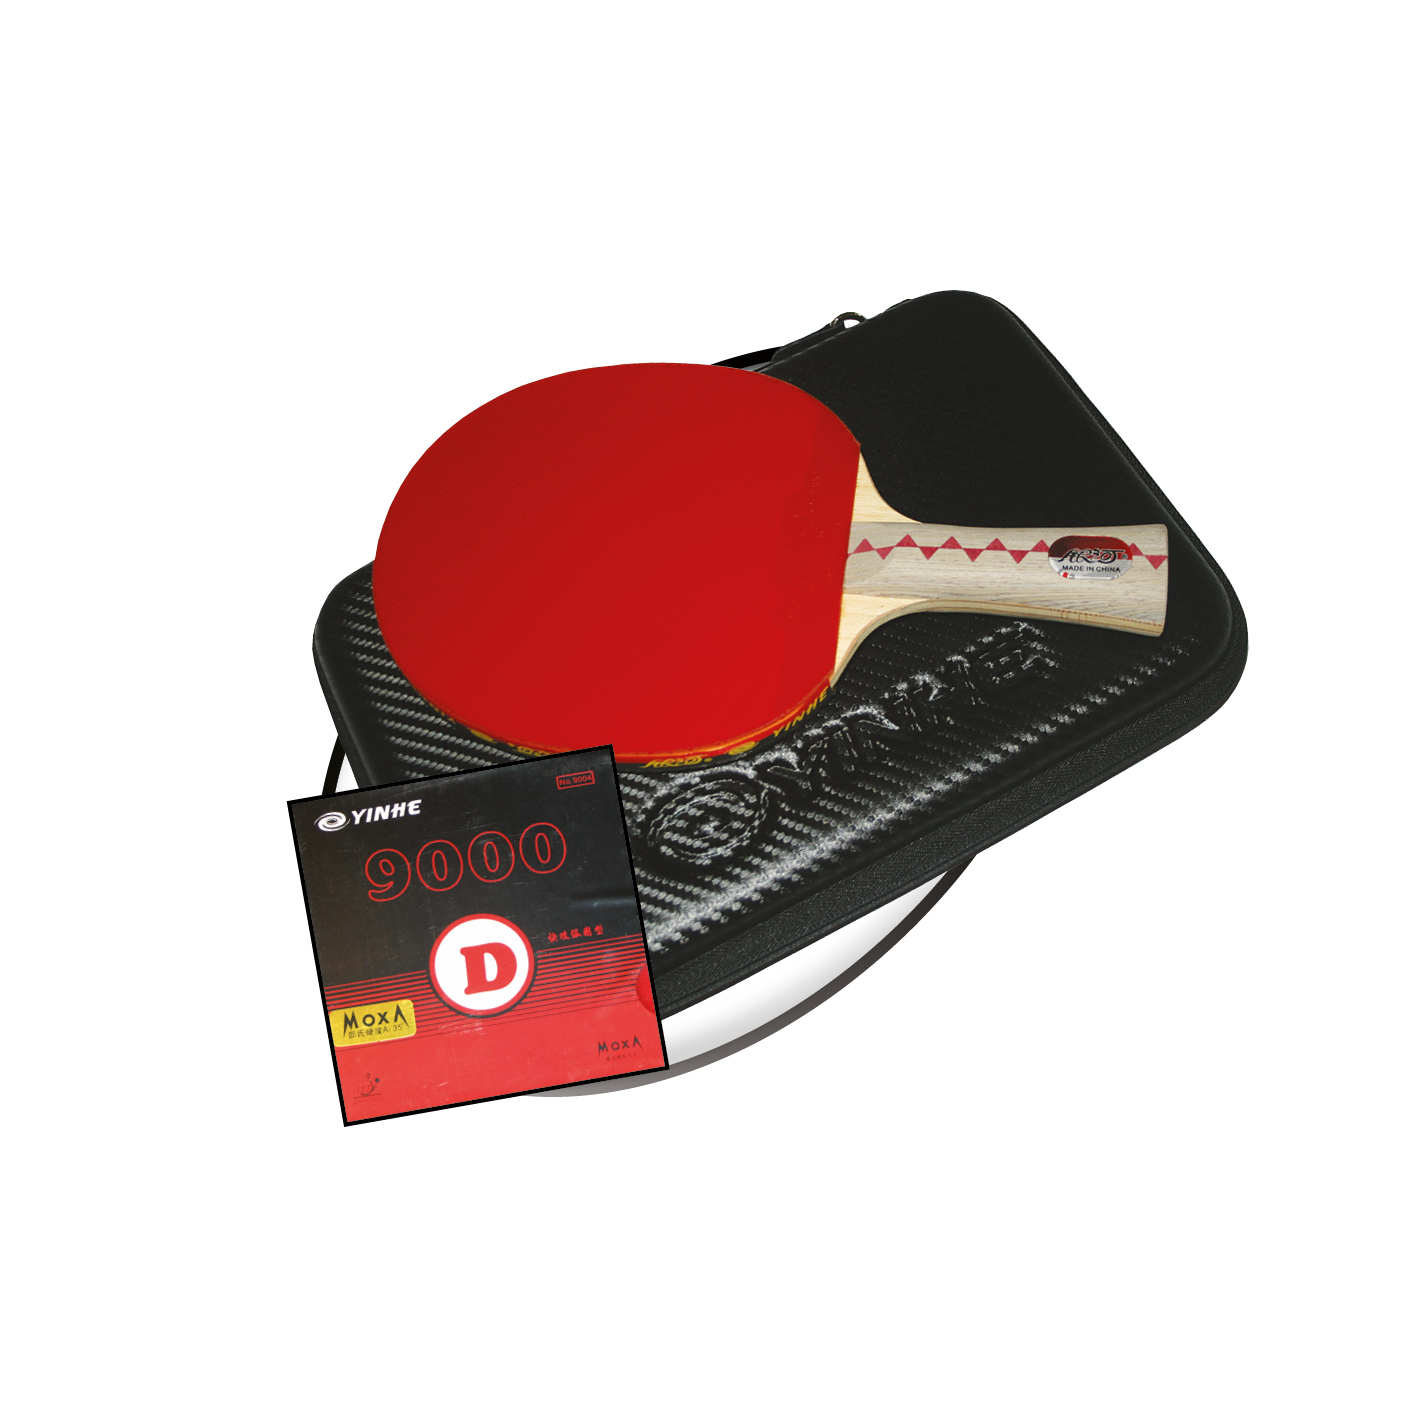 table tennis bats. yinhe carbon edge table tennis bat table tennis bats